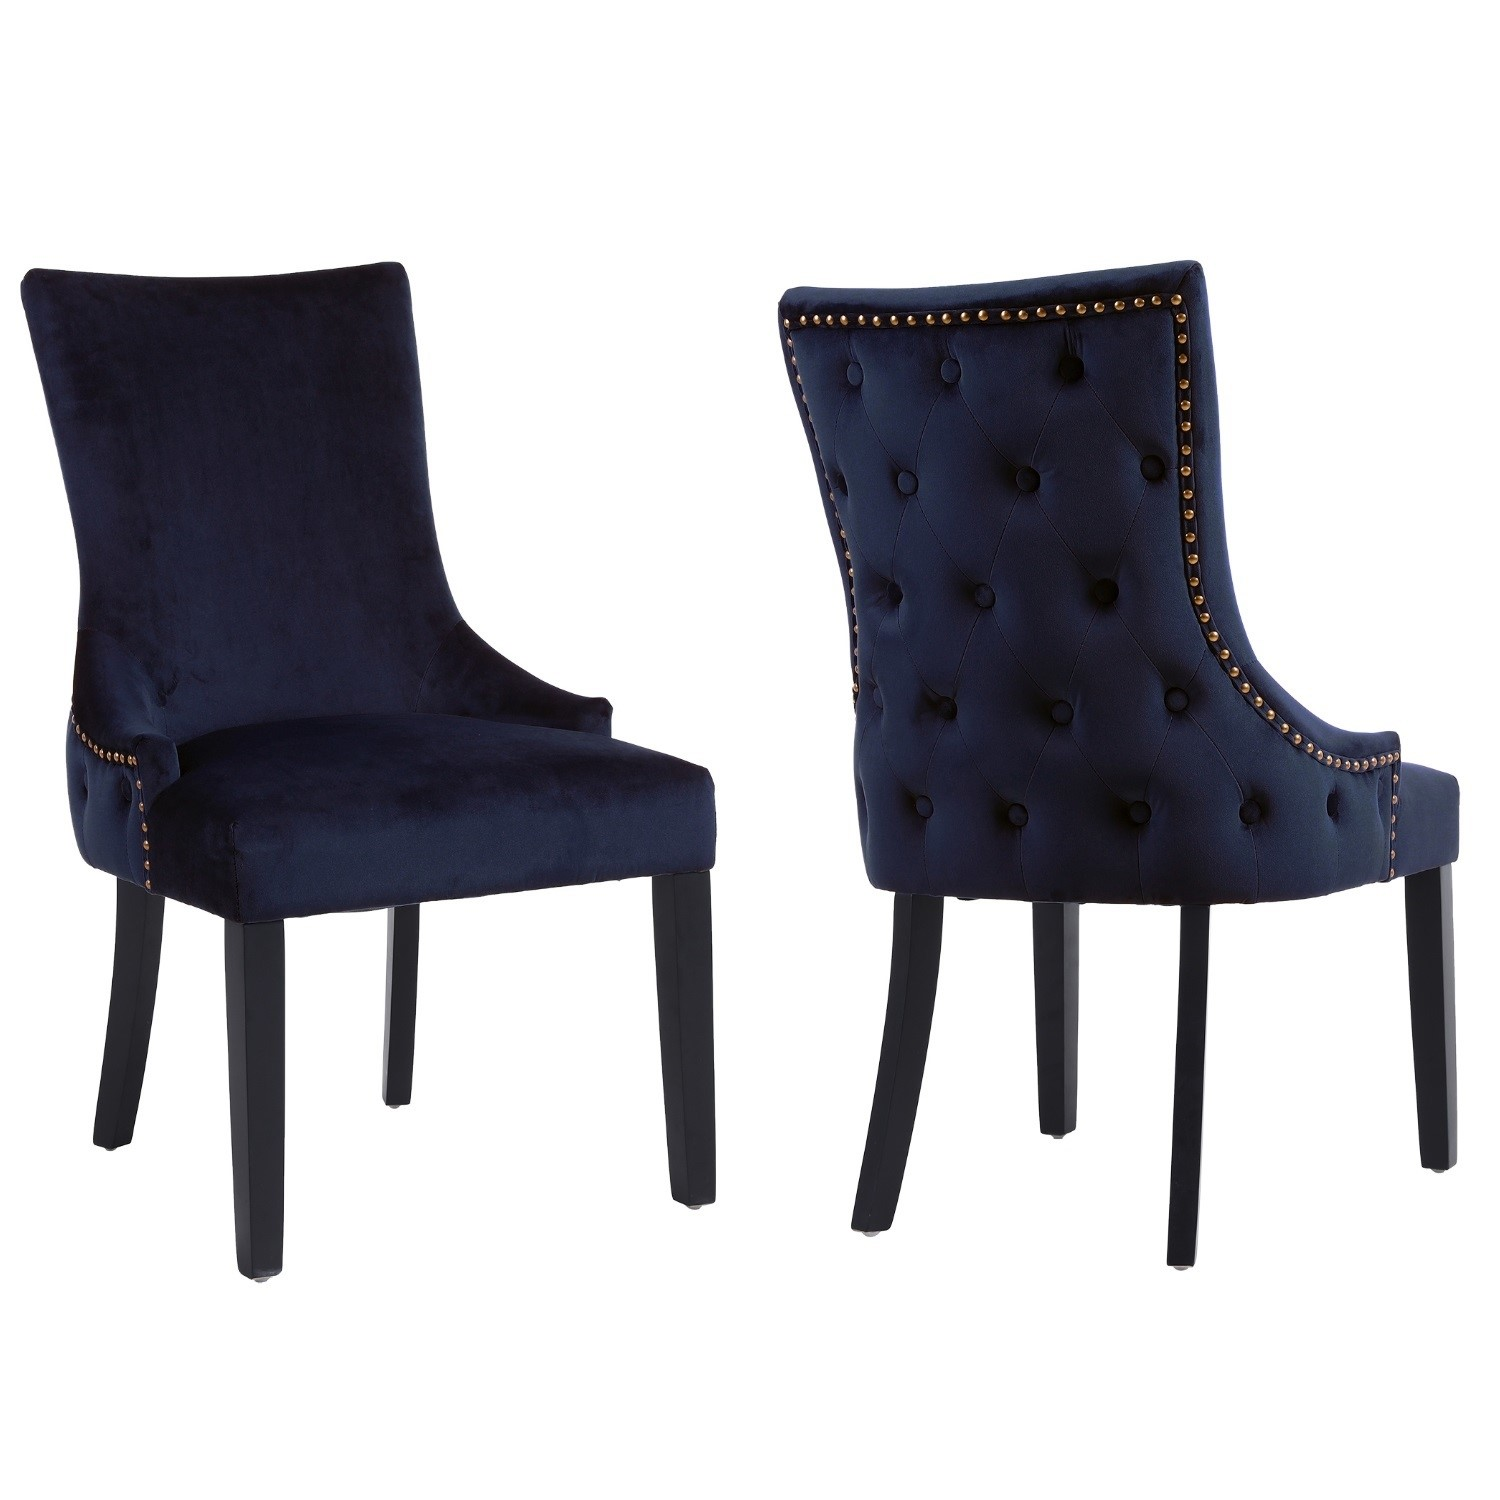 Pair of Navy Blue Velvet Dining Chairs with Buttoned Back  Jade Boutique